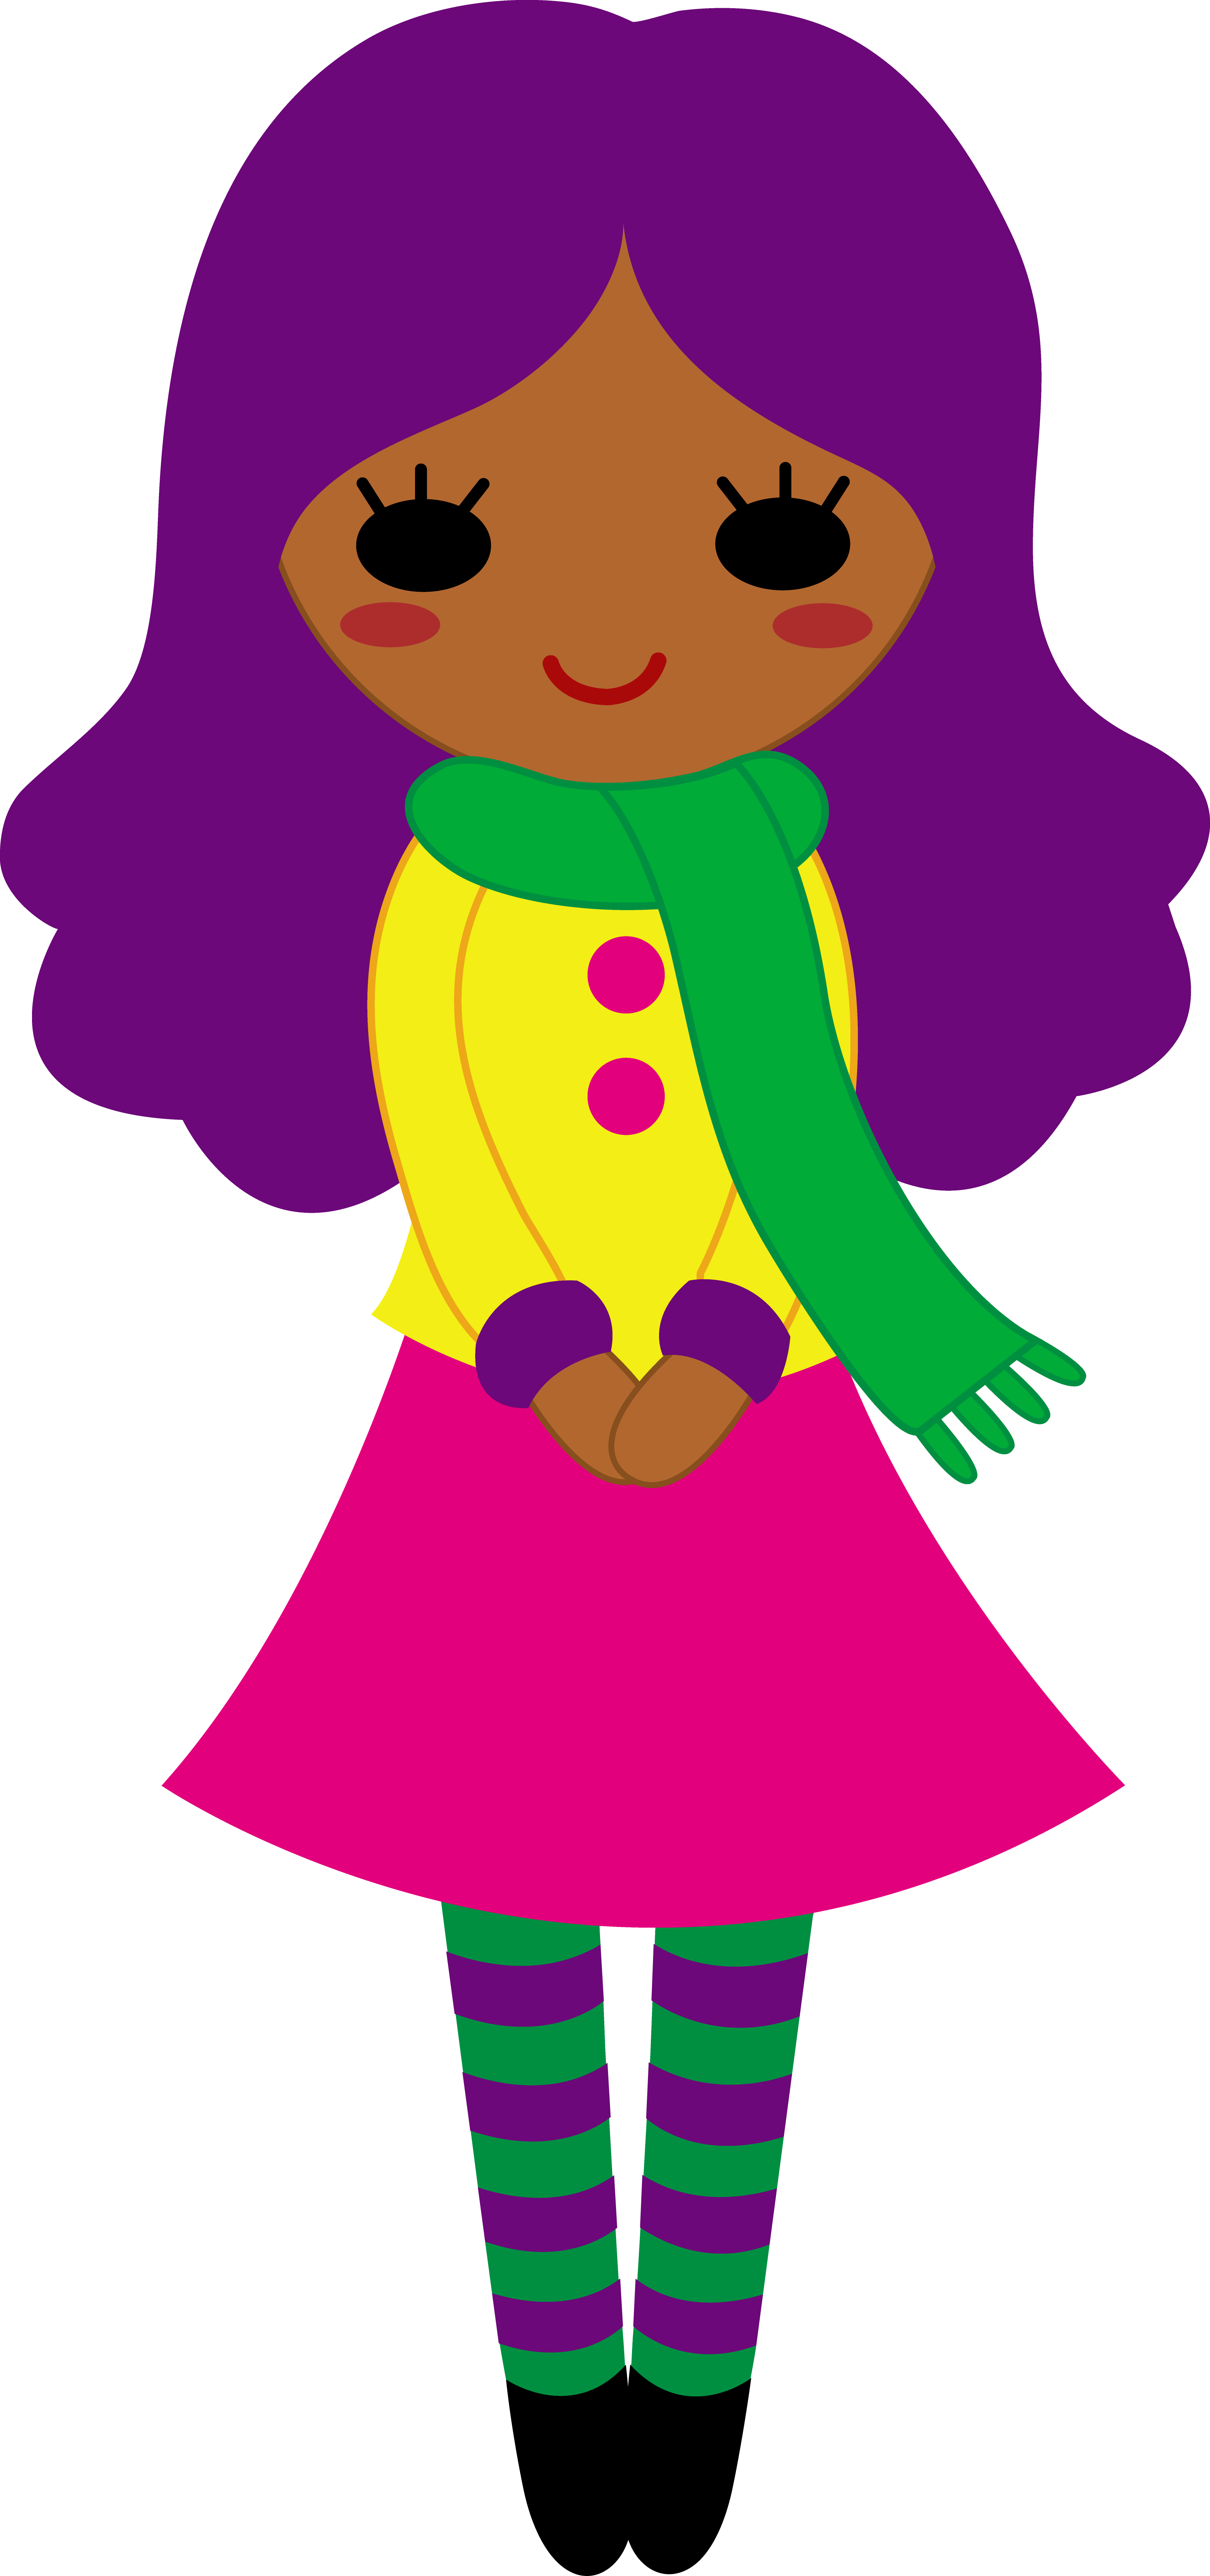 Skirt clipart purple object. Cute girl with hair